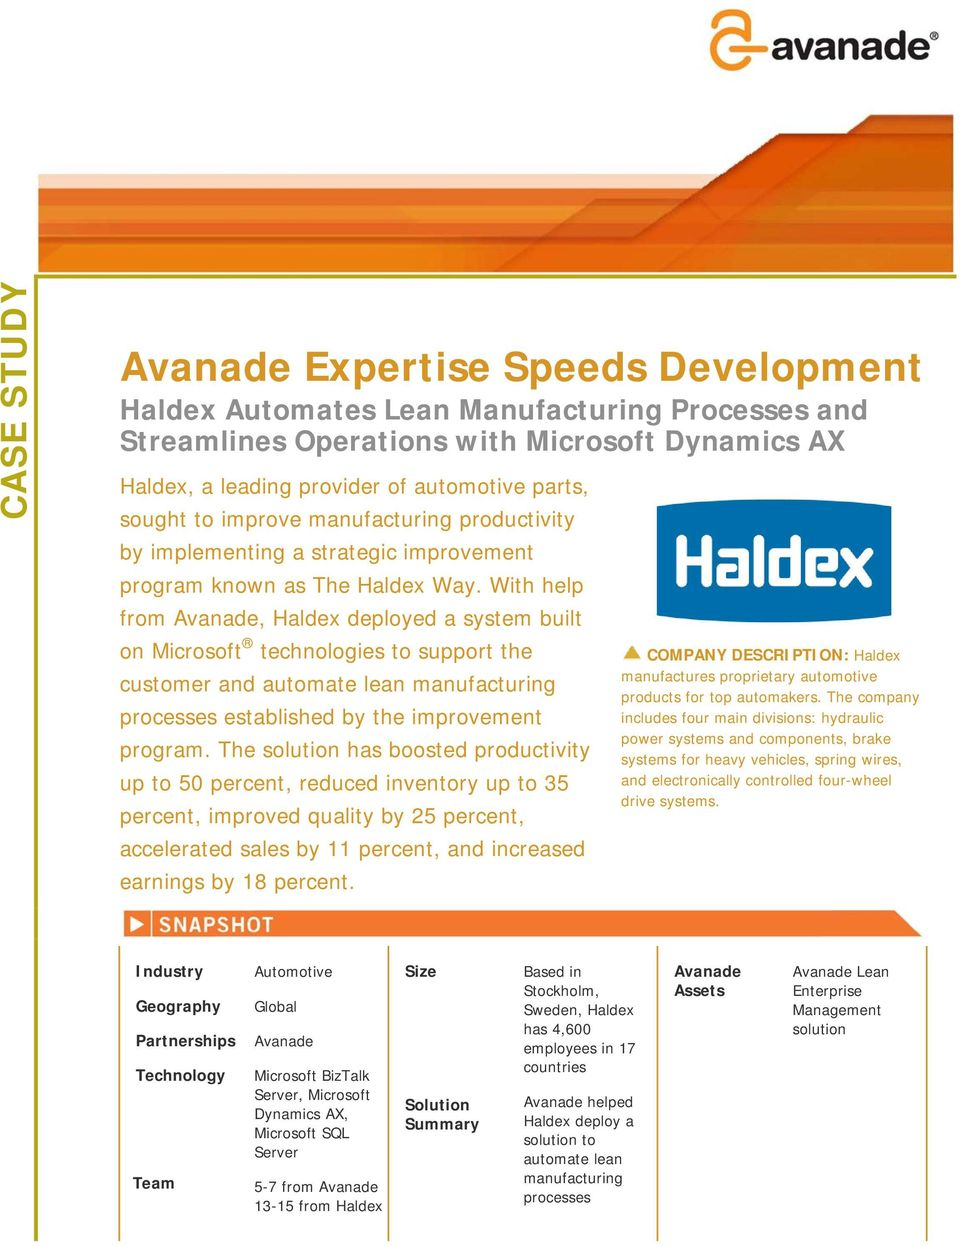 With help from Avanade, Haldex deployed a system built on Microsoft technologies to support the customer and automate lean manufacturing processes established by the improvement program.